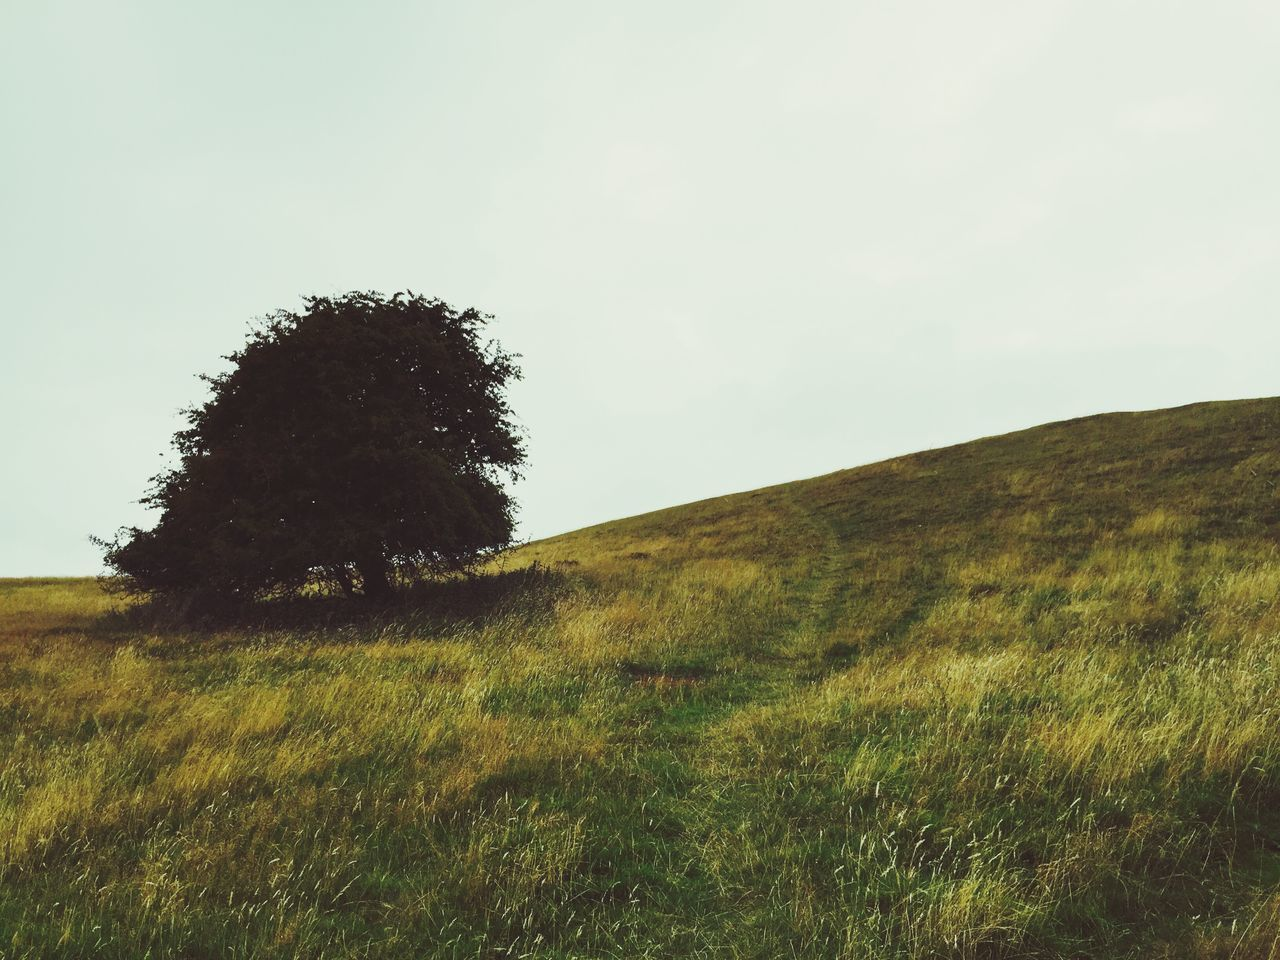 Low Angle View Of Tree Growing On Grassy Field Against Sky